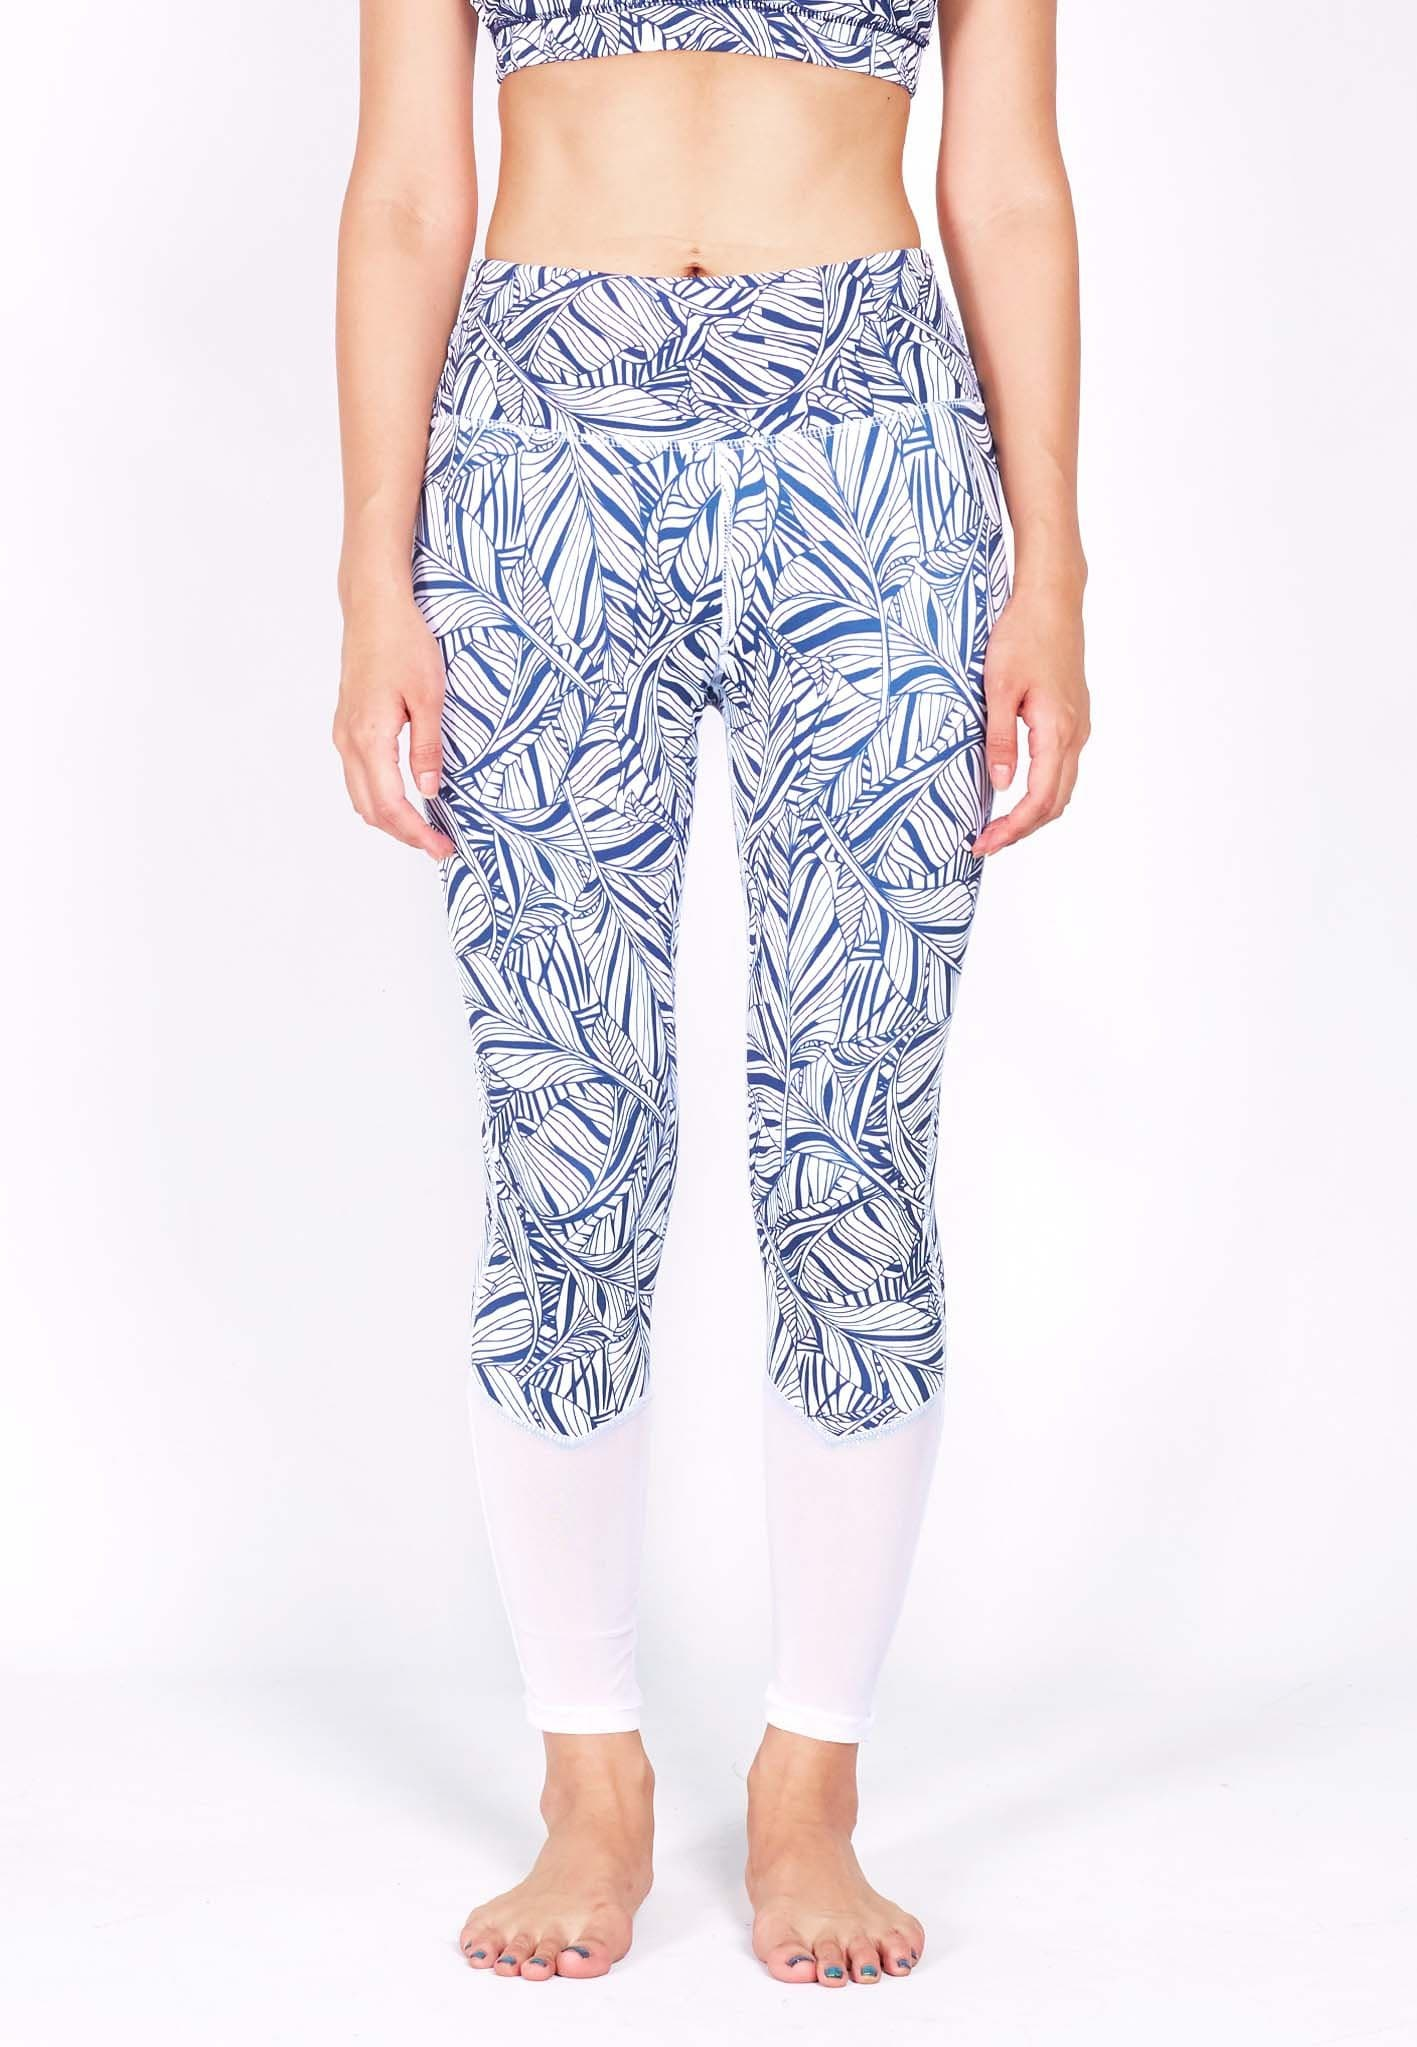 HYPE Blocking Leggings (with Keeperband®) in Mesh/ Liberty Print (S - 3XL)